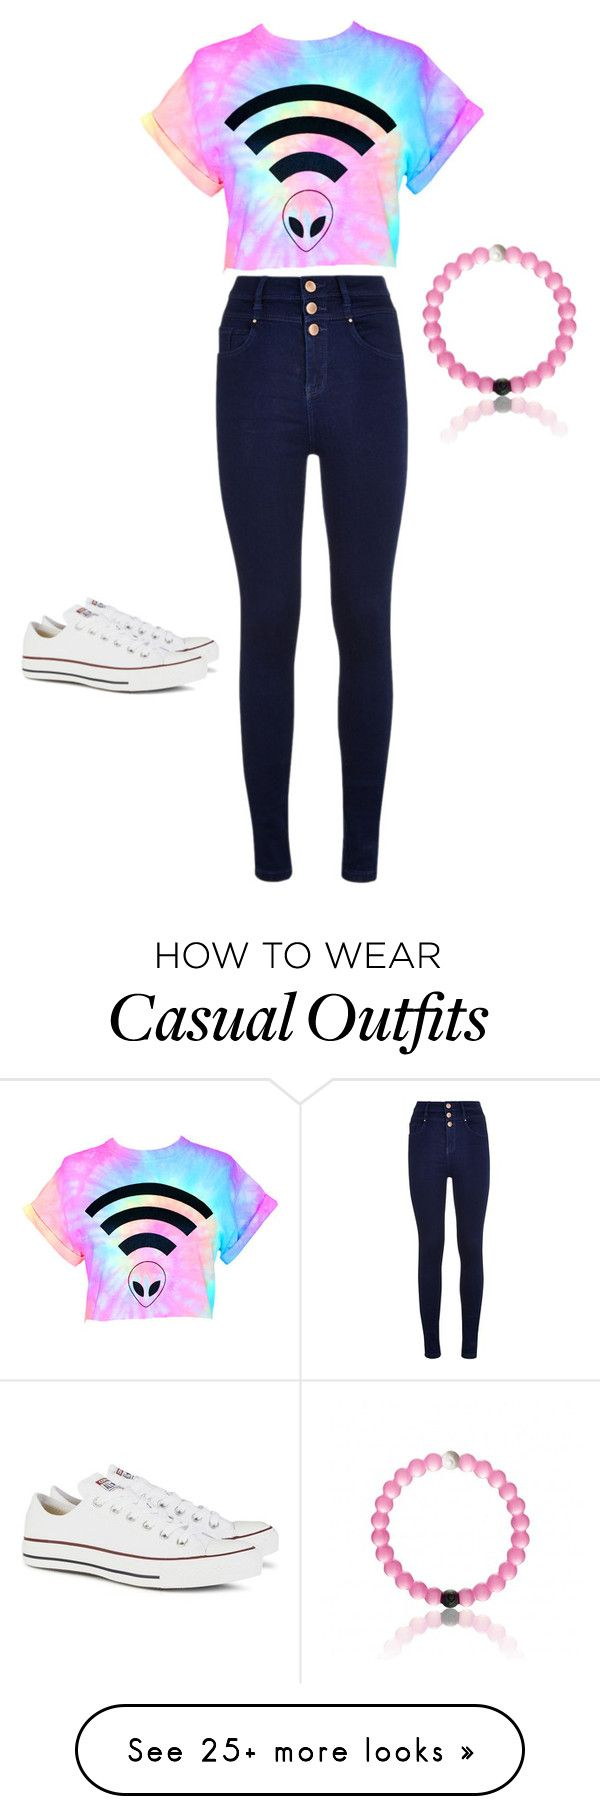 17 Best ideas about Lunch Outfit on Pinterest